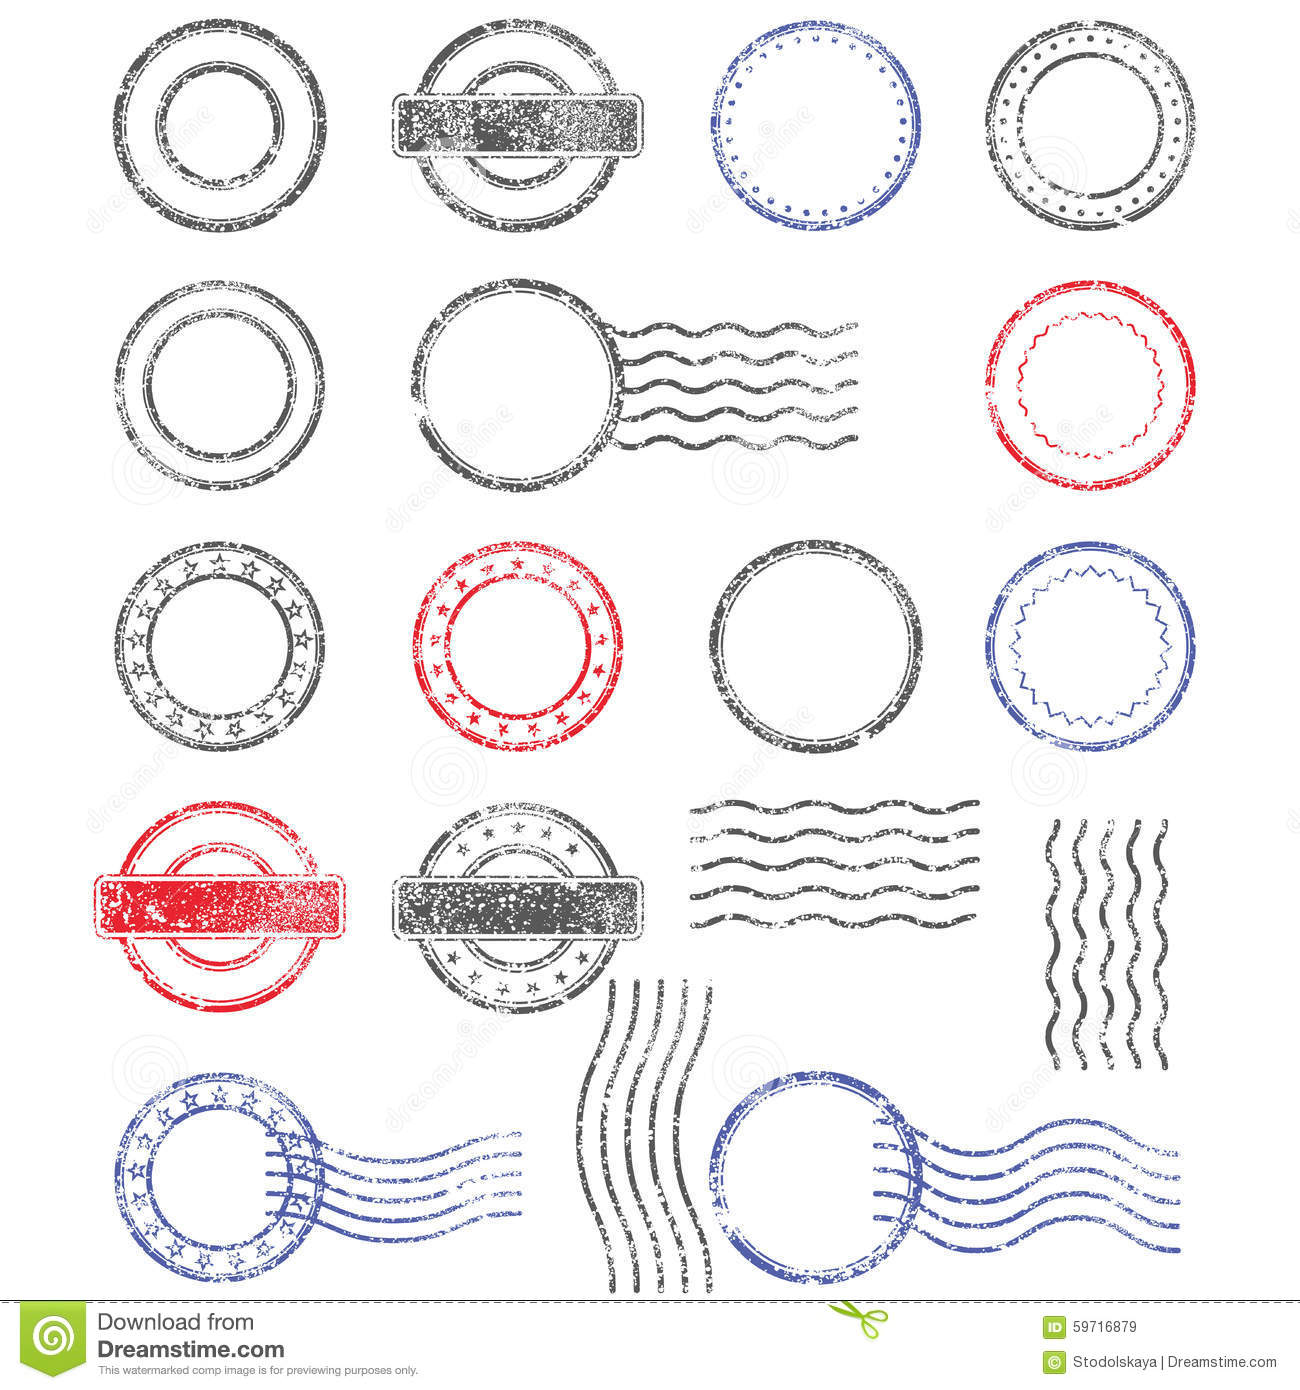 Blank Templates Of Shabby Postal Stamps Stock Vector